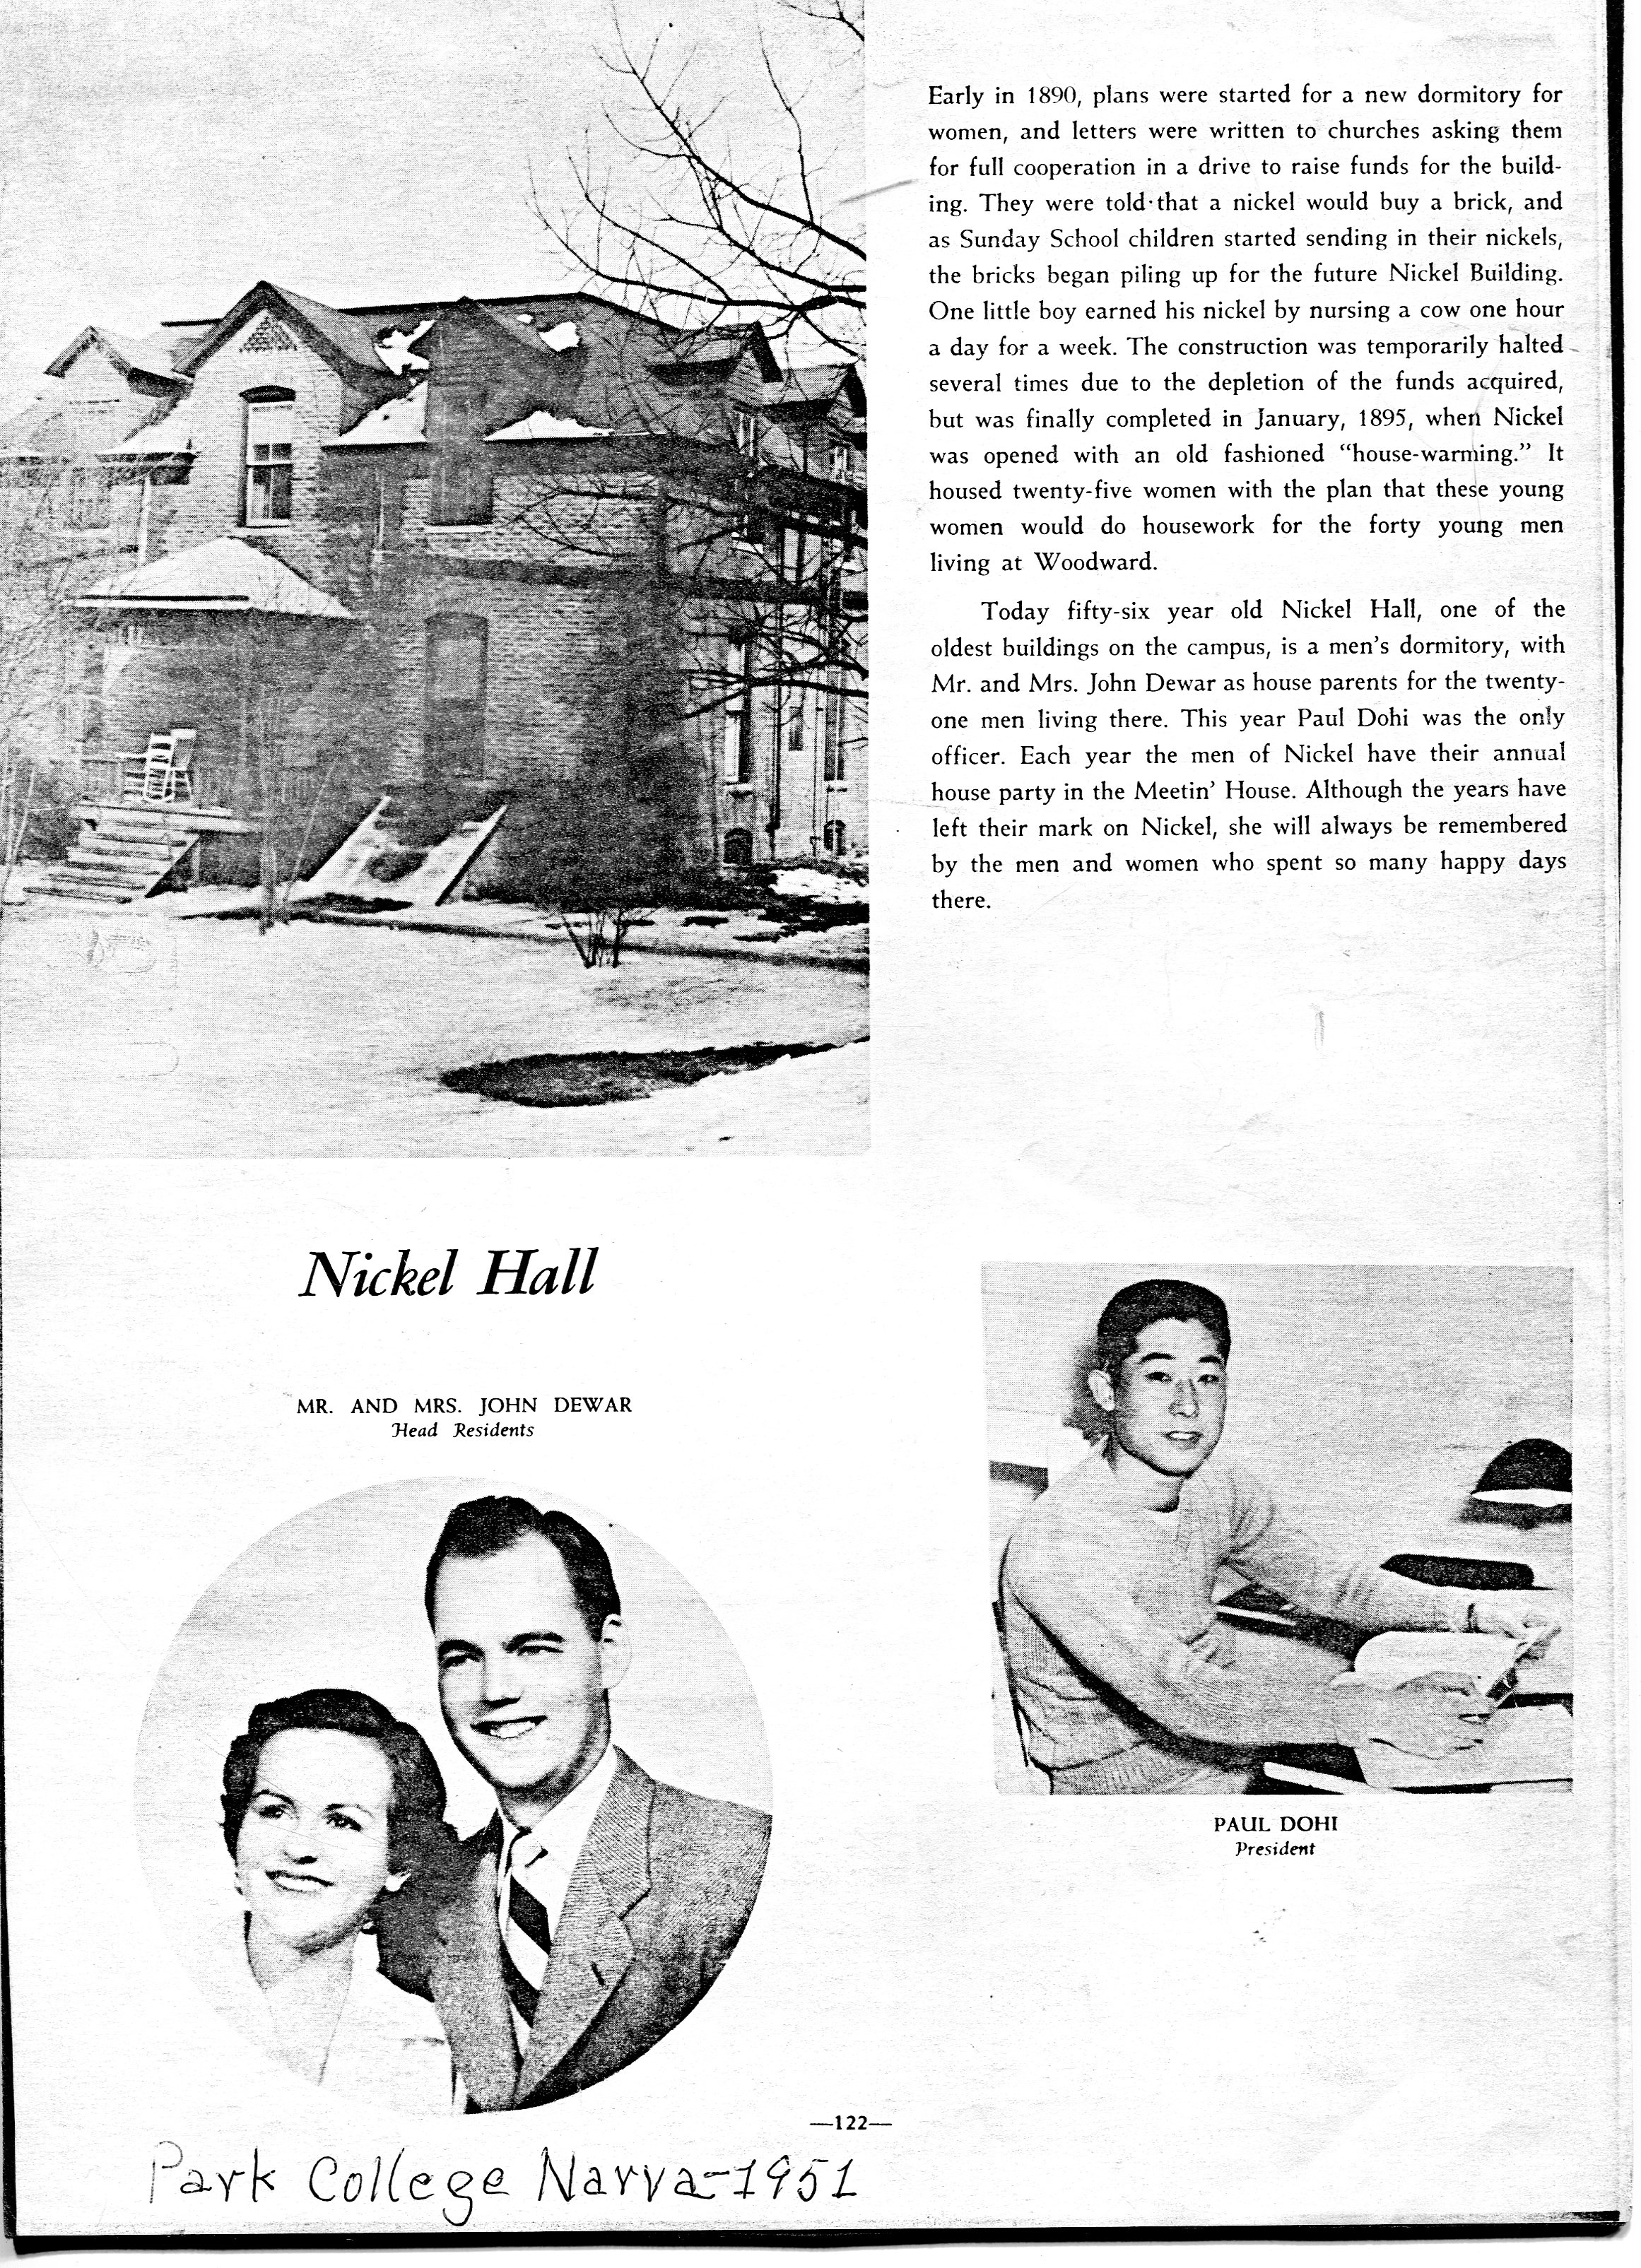 Photo of Nickel Hall in the 1951 Narva. It would be after it was converted to a men's dorm.